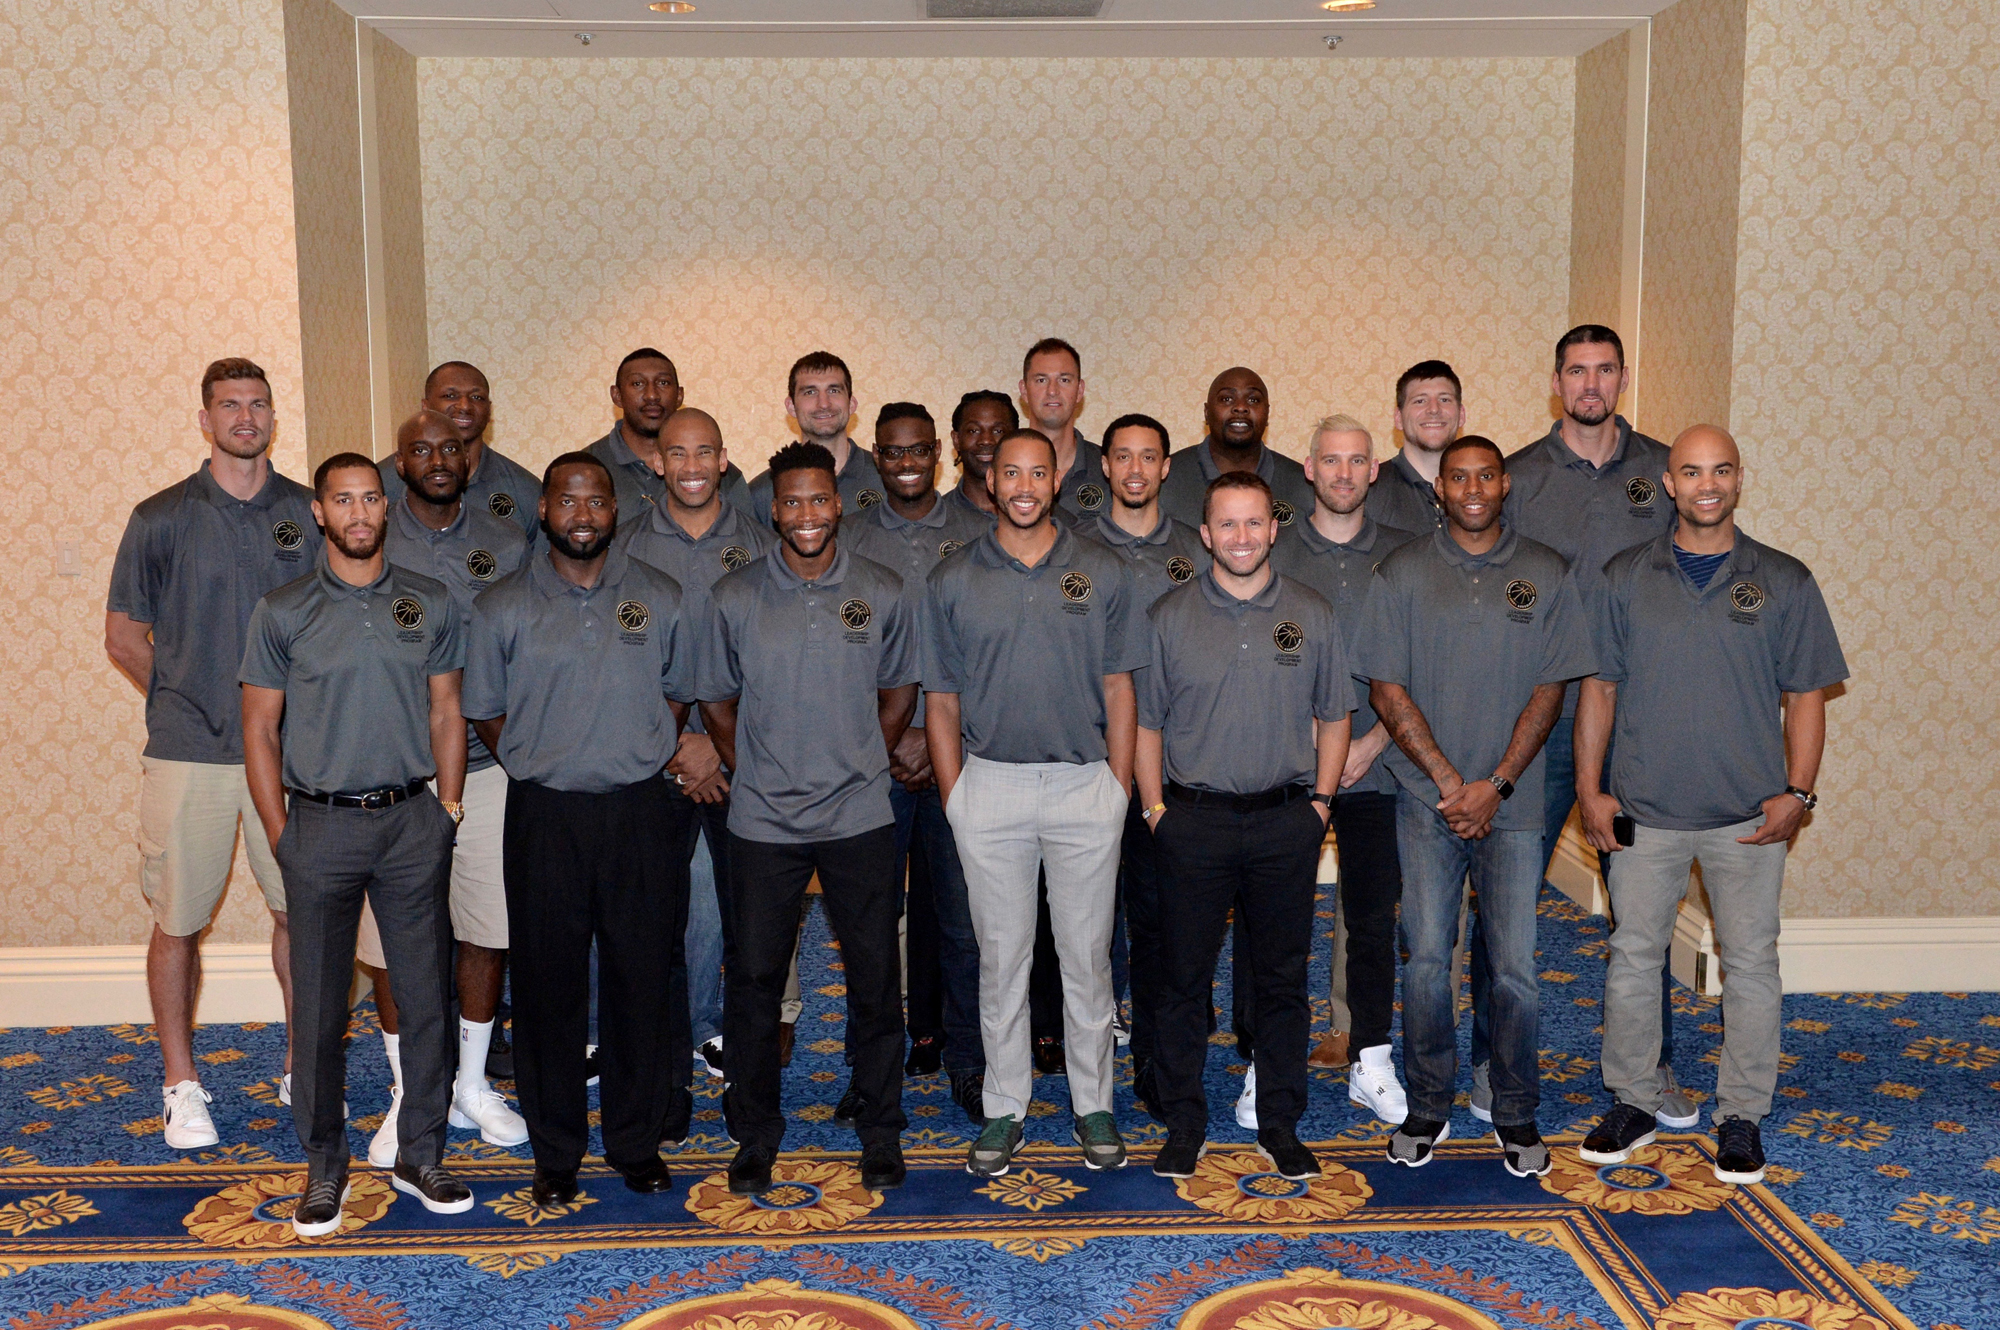 8aac8435259c NBA players past and present develop front-office skills through ...